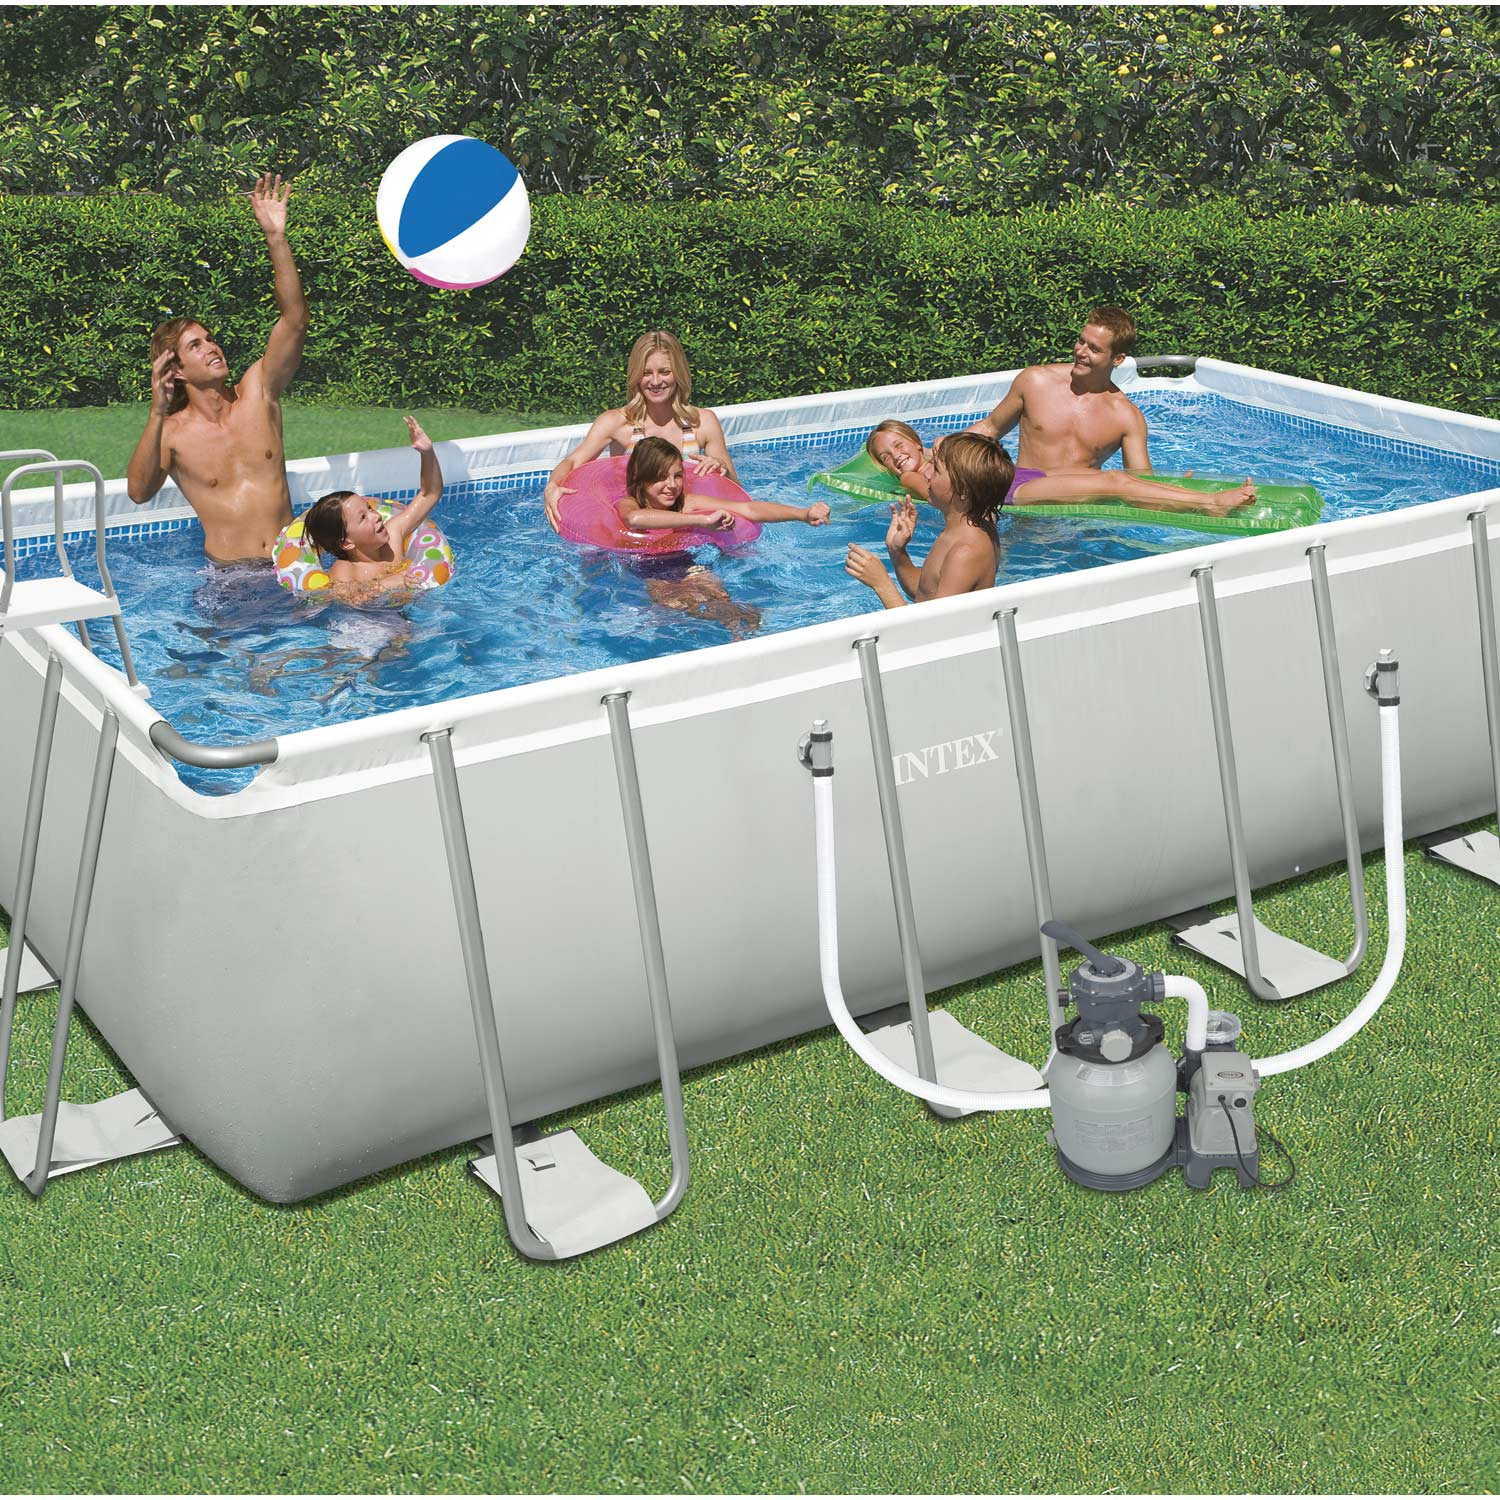 Piscine hors sol autoportante tubulaire ultra silver intex for Plateforme piscine hors sol